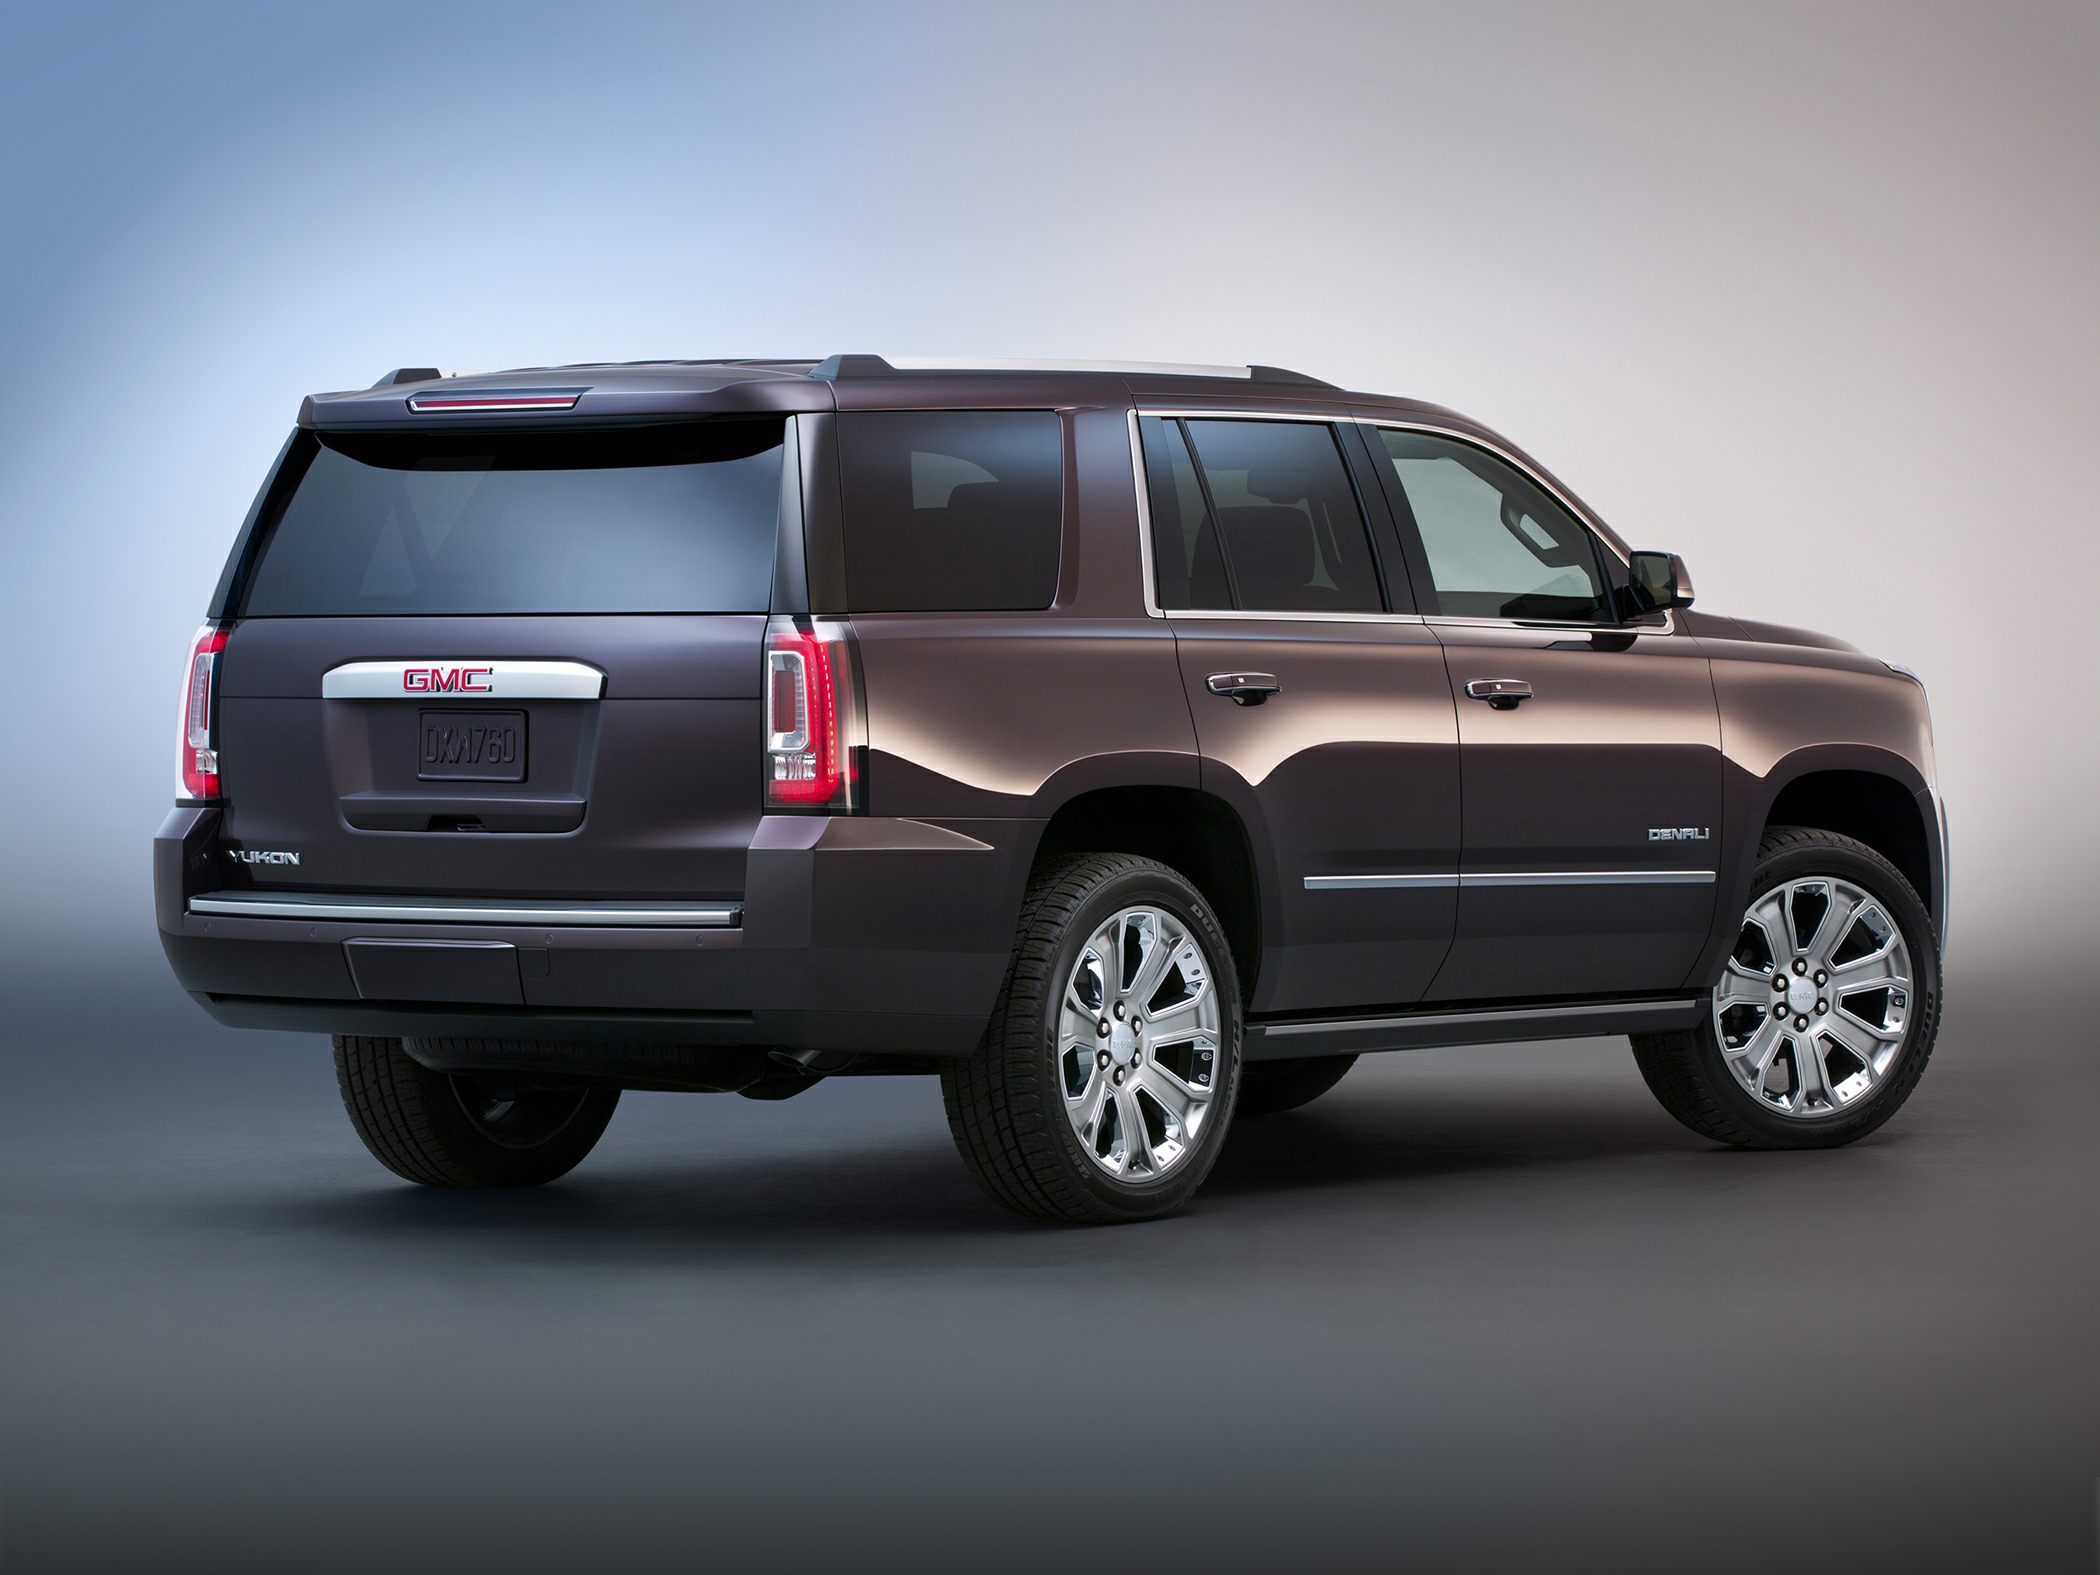 sale pinterest jeddah yukon for cars gmc in pin